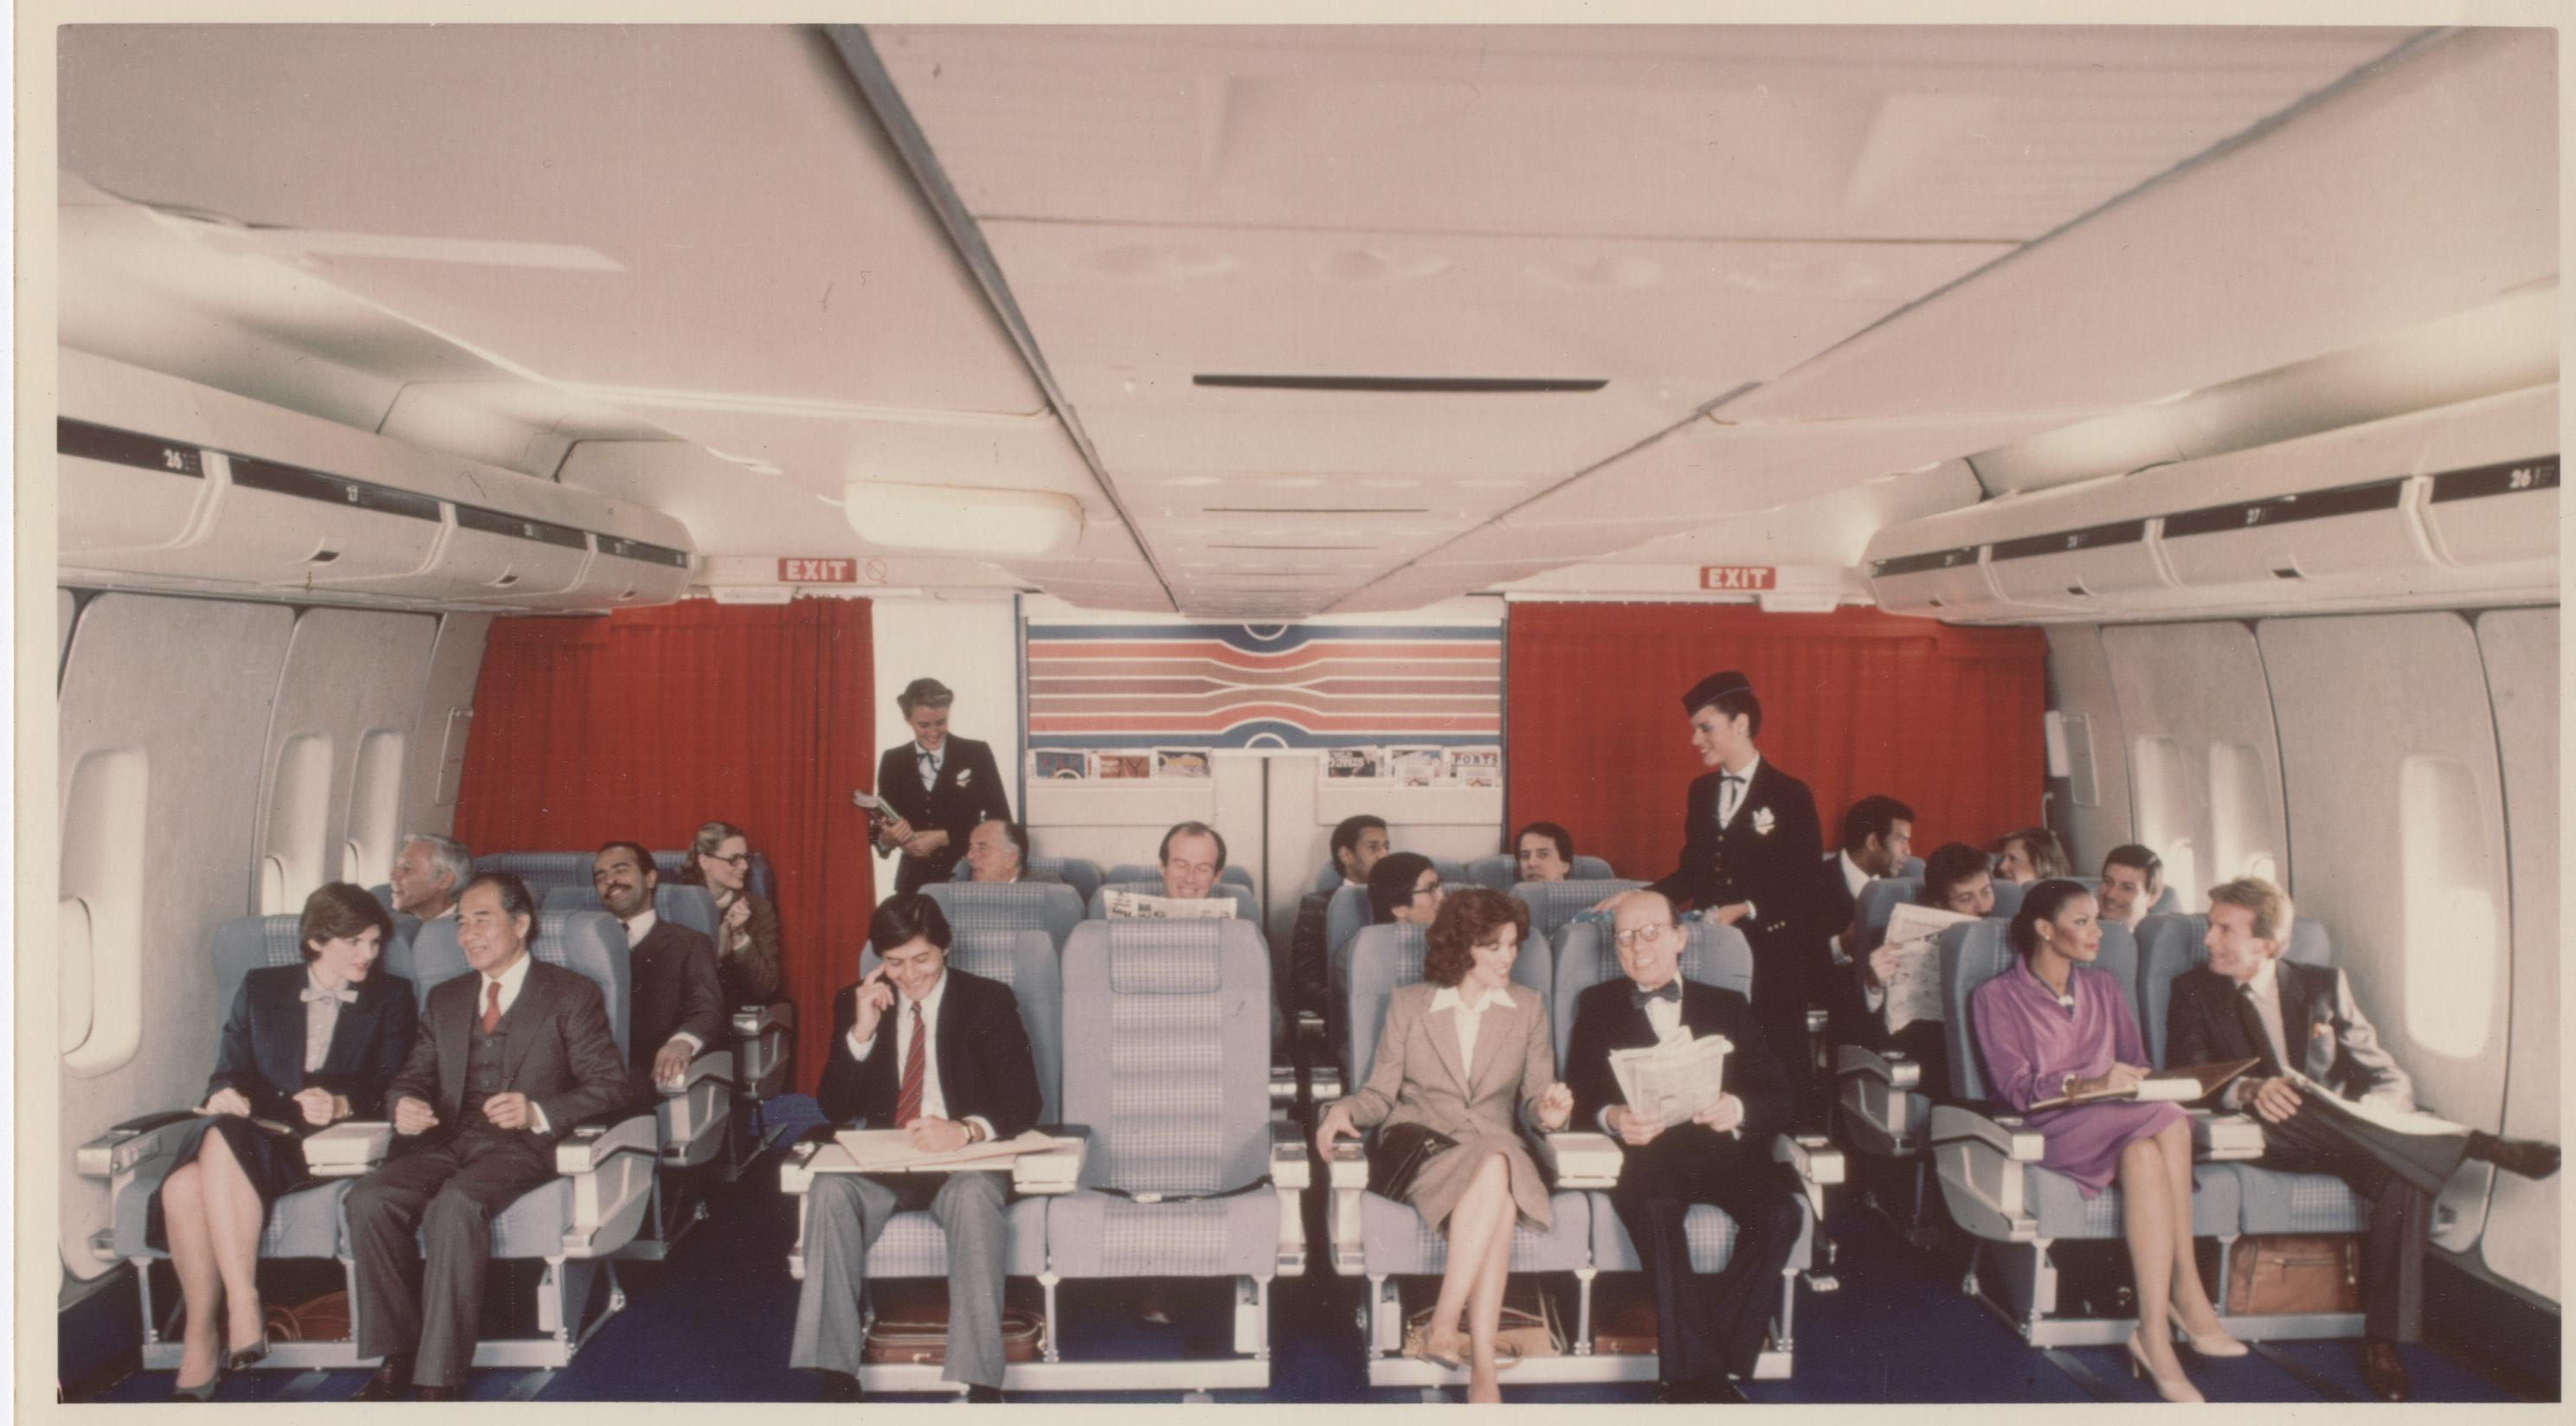 1980  When Pan Am first created Clipper Class (business class) the new cabin featured 8 across seating which was two less seats then in the Economy cabin.  Later Pan Am would convert to a 6 across cabin offering Clipper Class customers even more space.